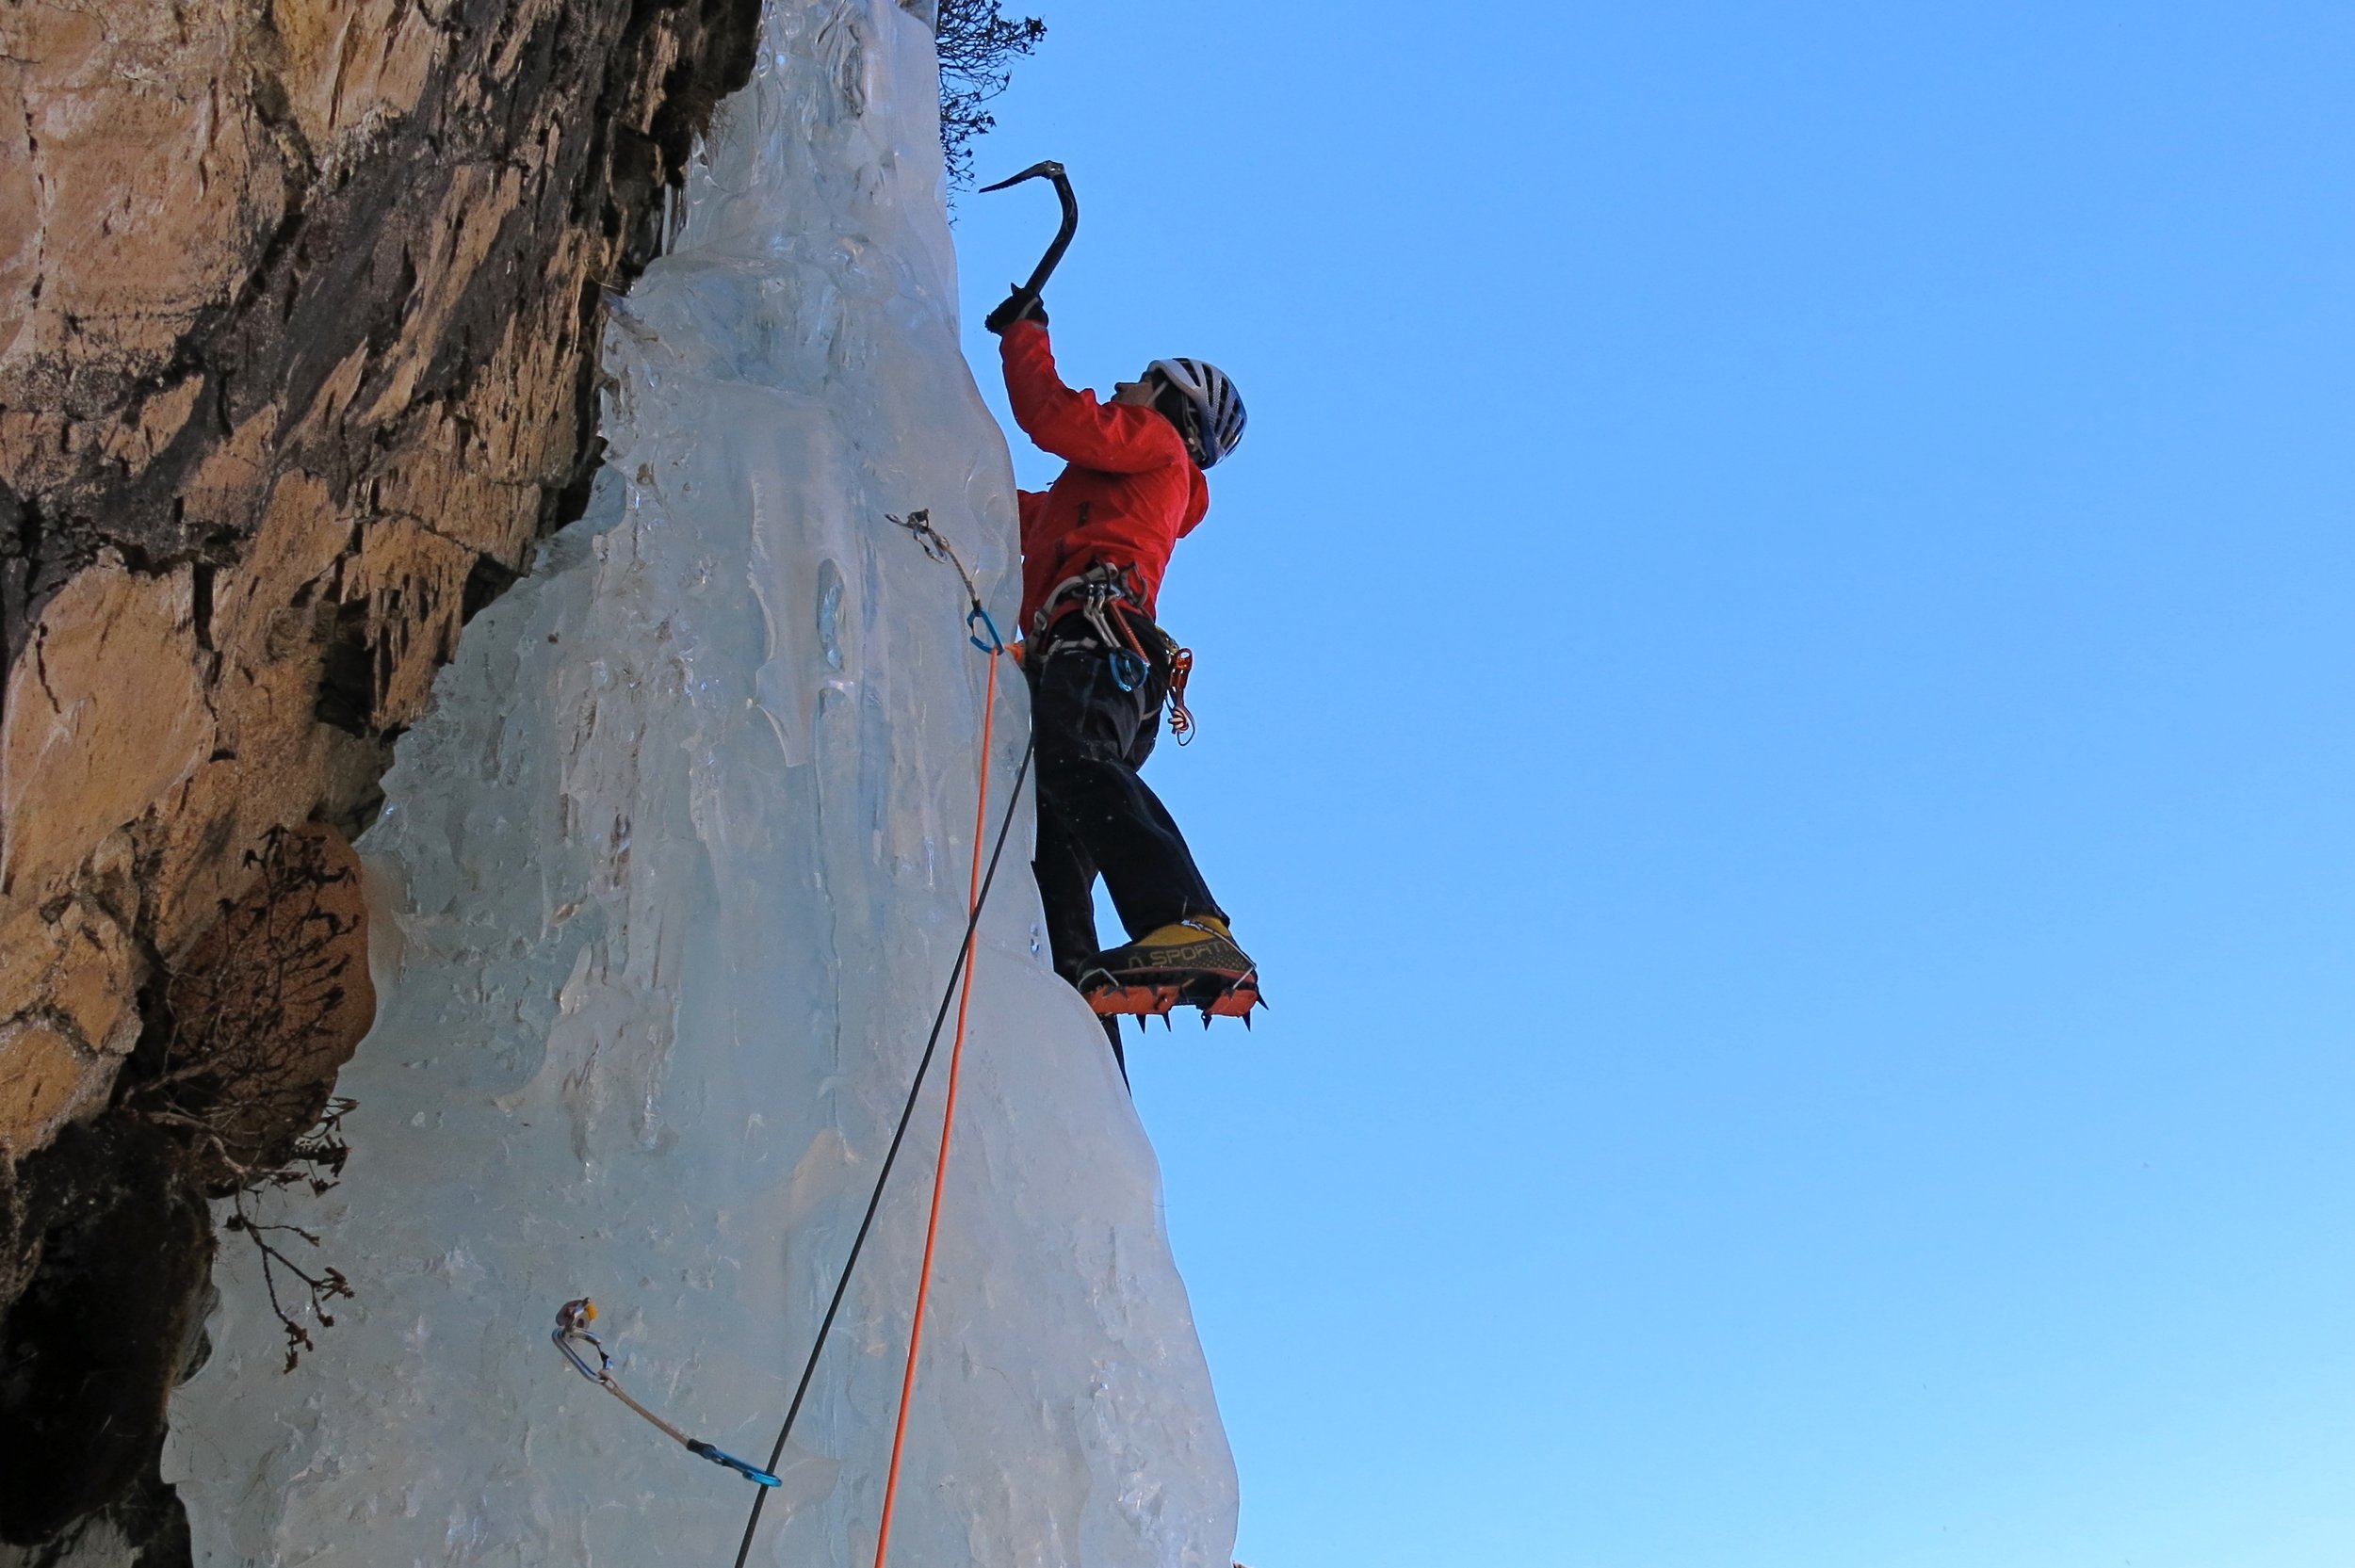 Splashdown WI 6. Rowaling, Nepal. First ascent in 2013  Photo: Gresham collection